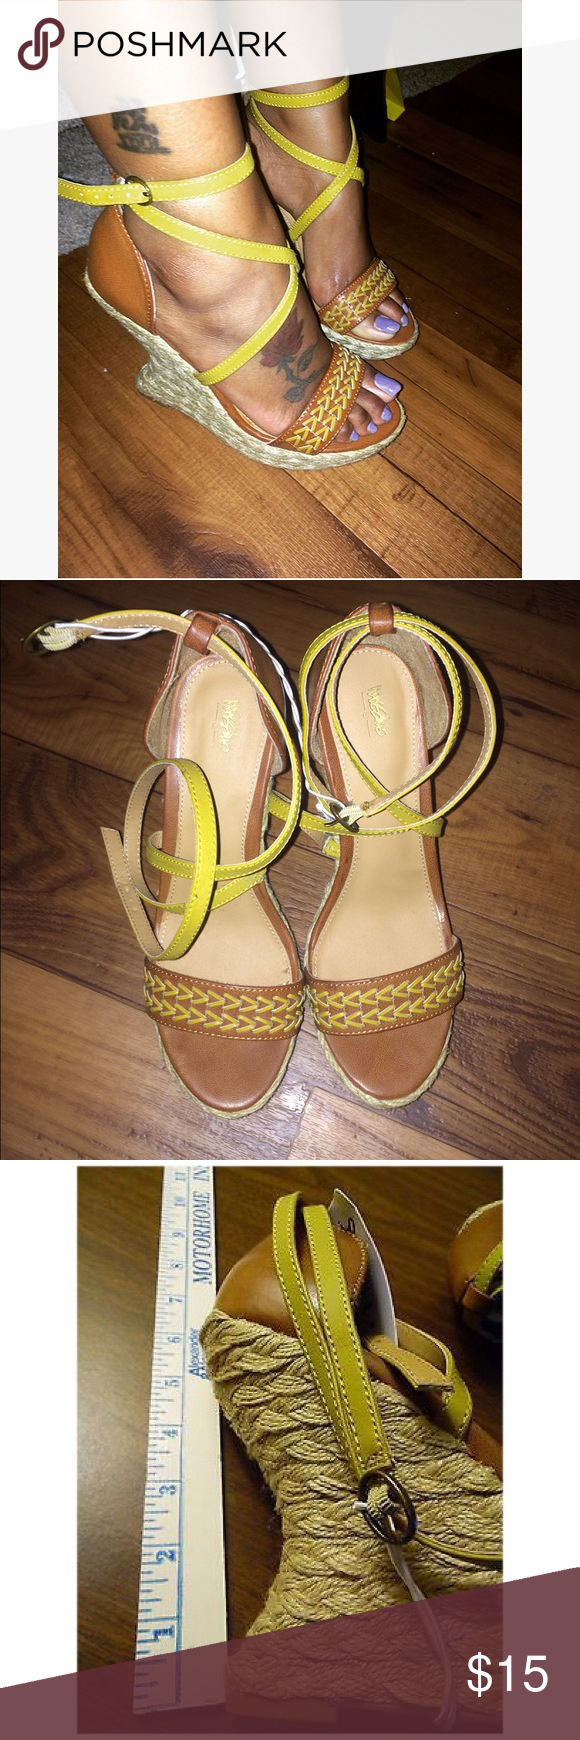 Vergie Sculpted Wedge Strappy mustard yellow and tan sculpted platform wedge sandals. Super trendy, extra comfy and never before worn! Mossimo Supply Co. Shoes Wedges